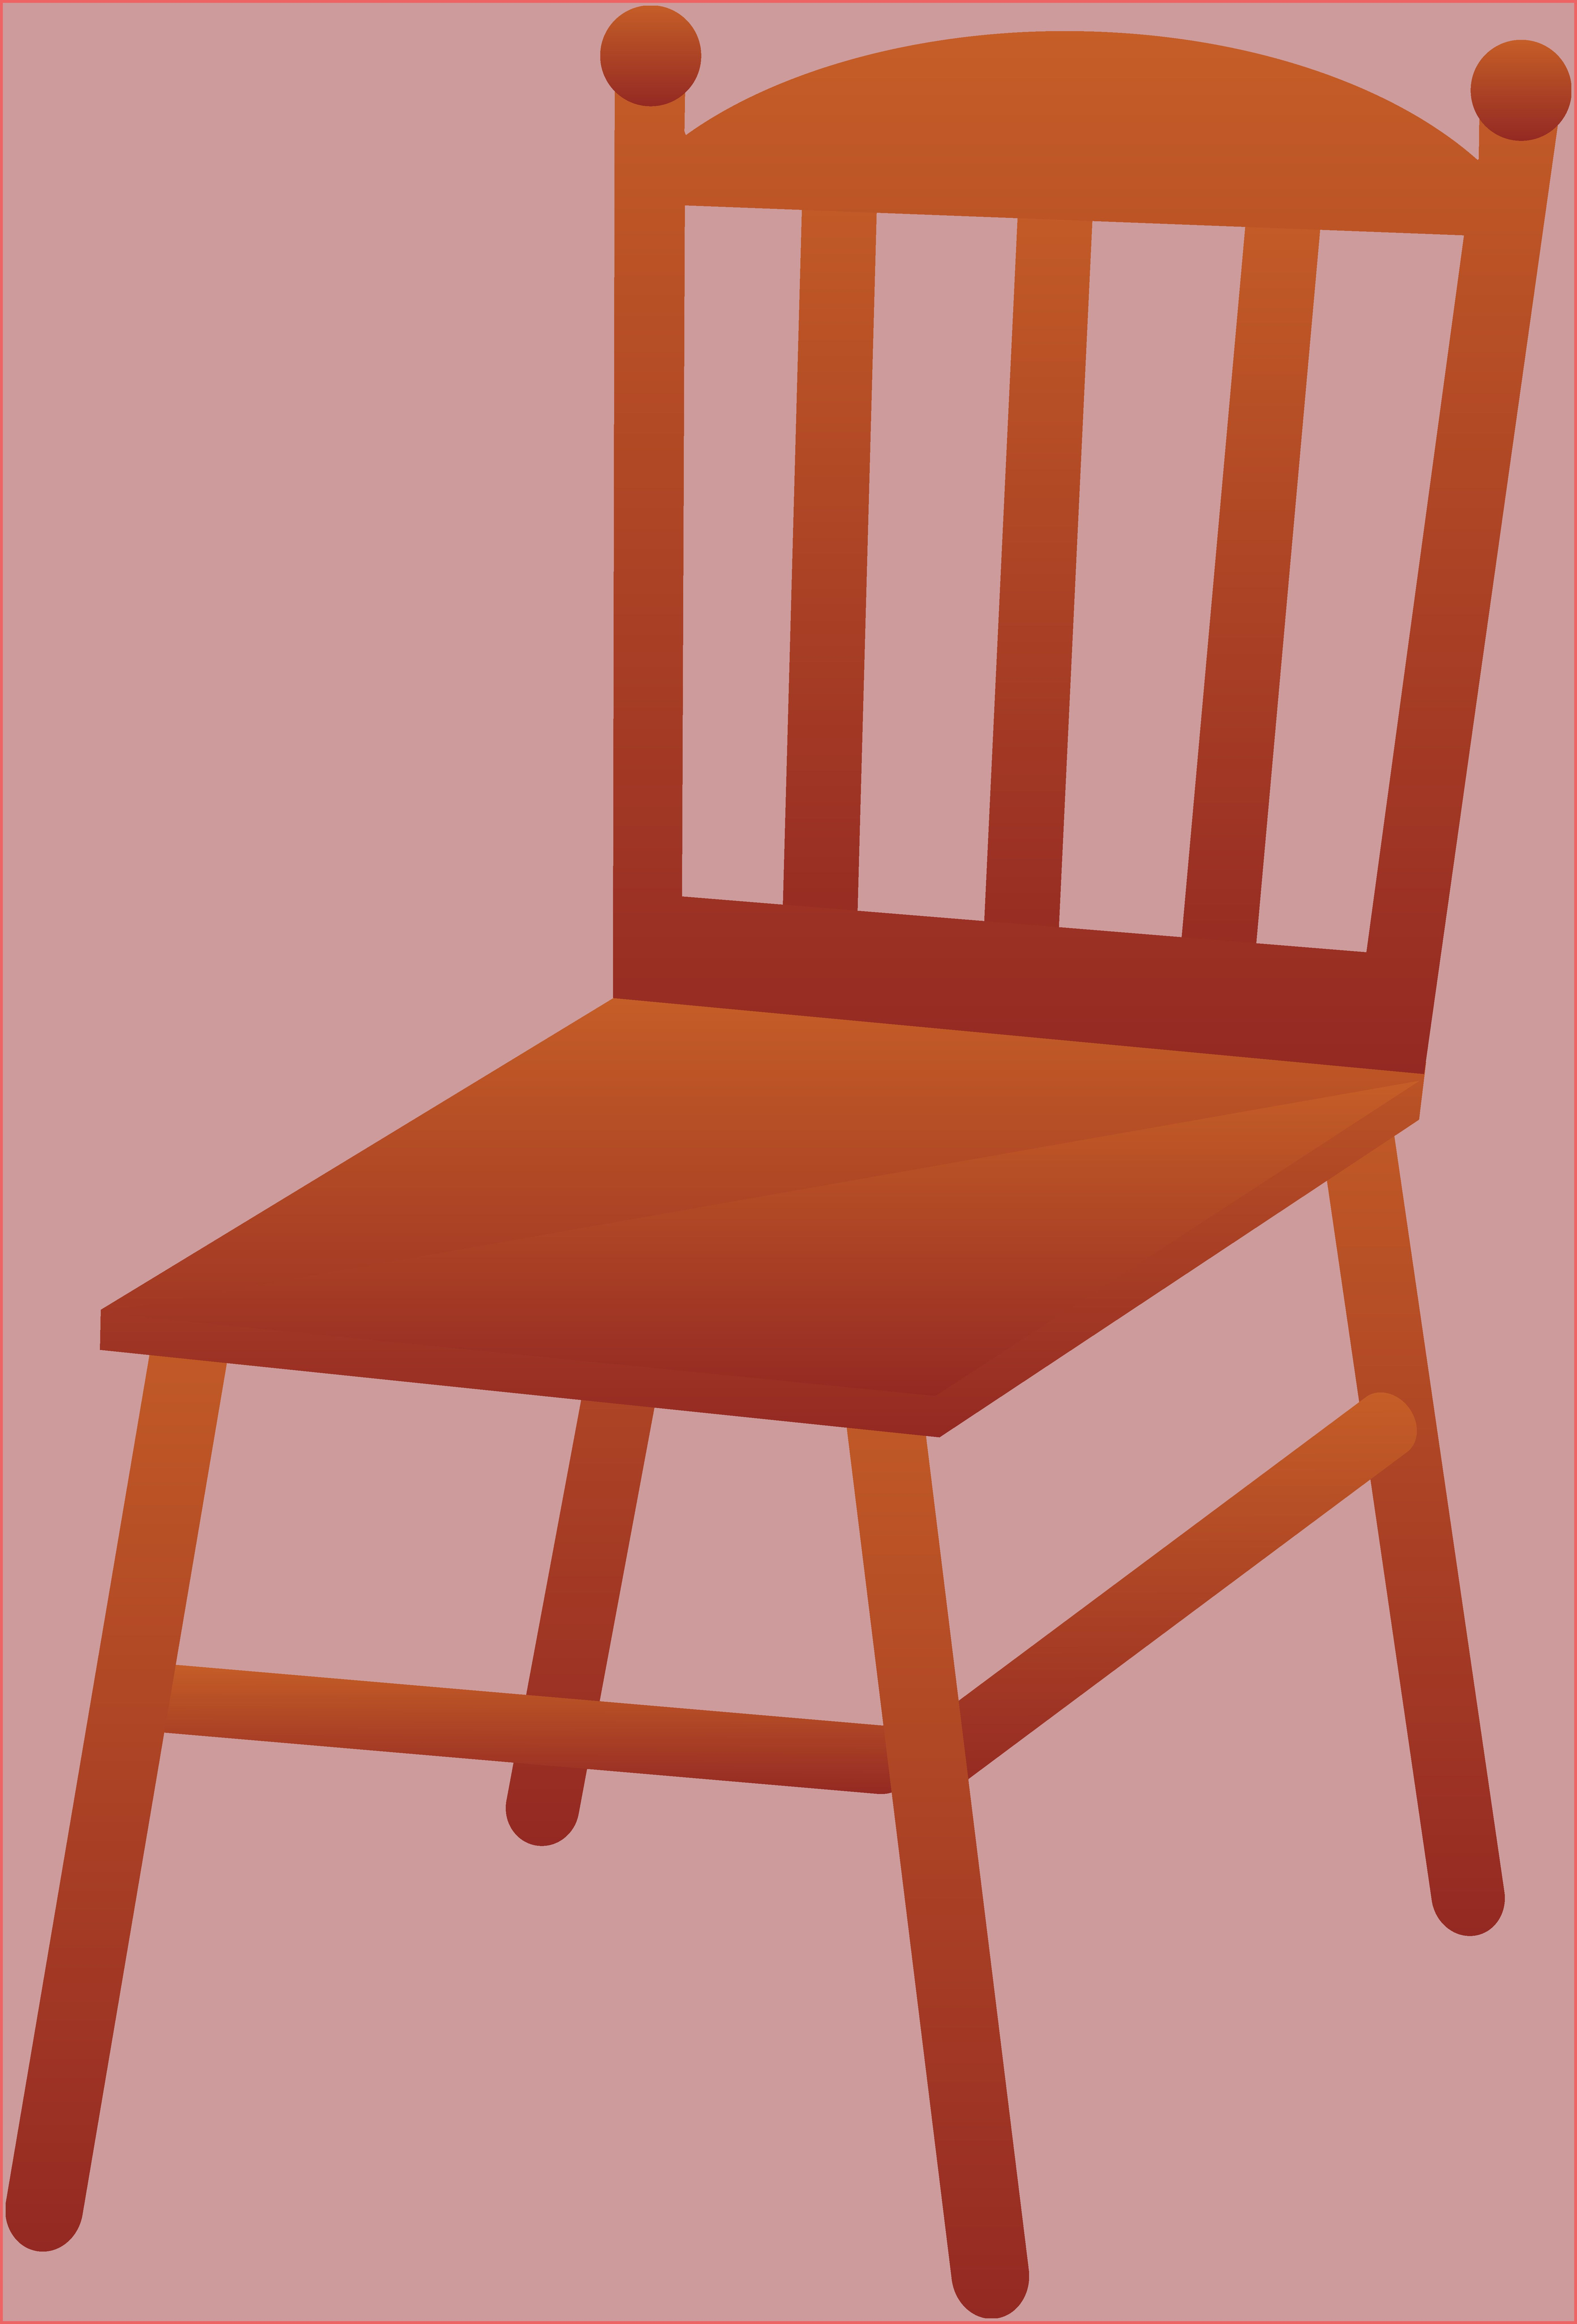 68 Reference Of Green Chair Cartoon In 2020 Green Chair Red Chair Chair